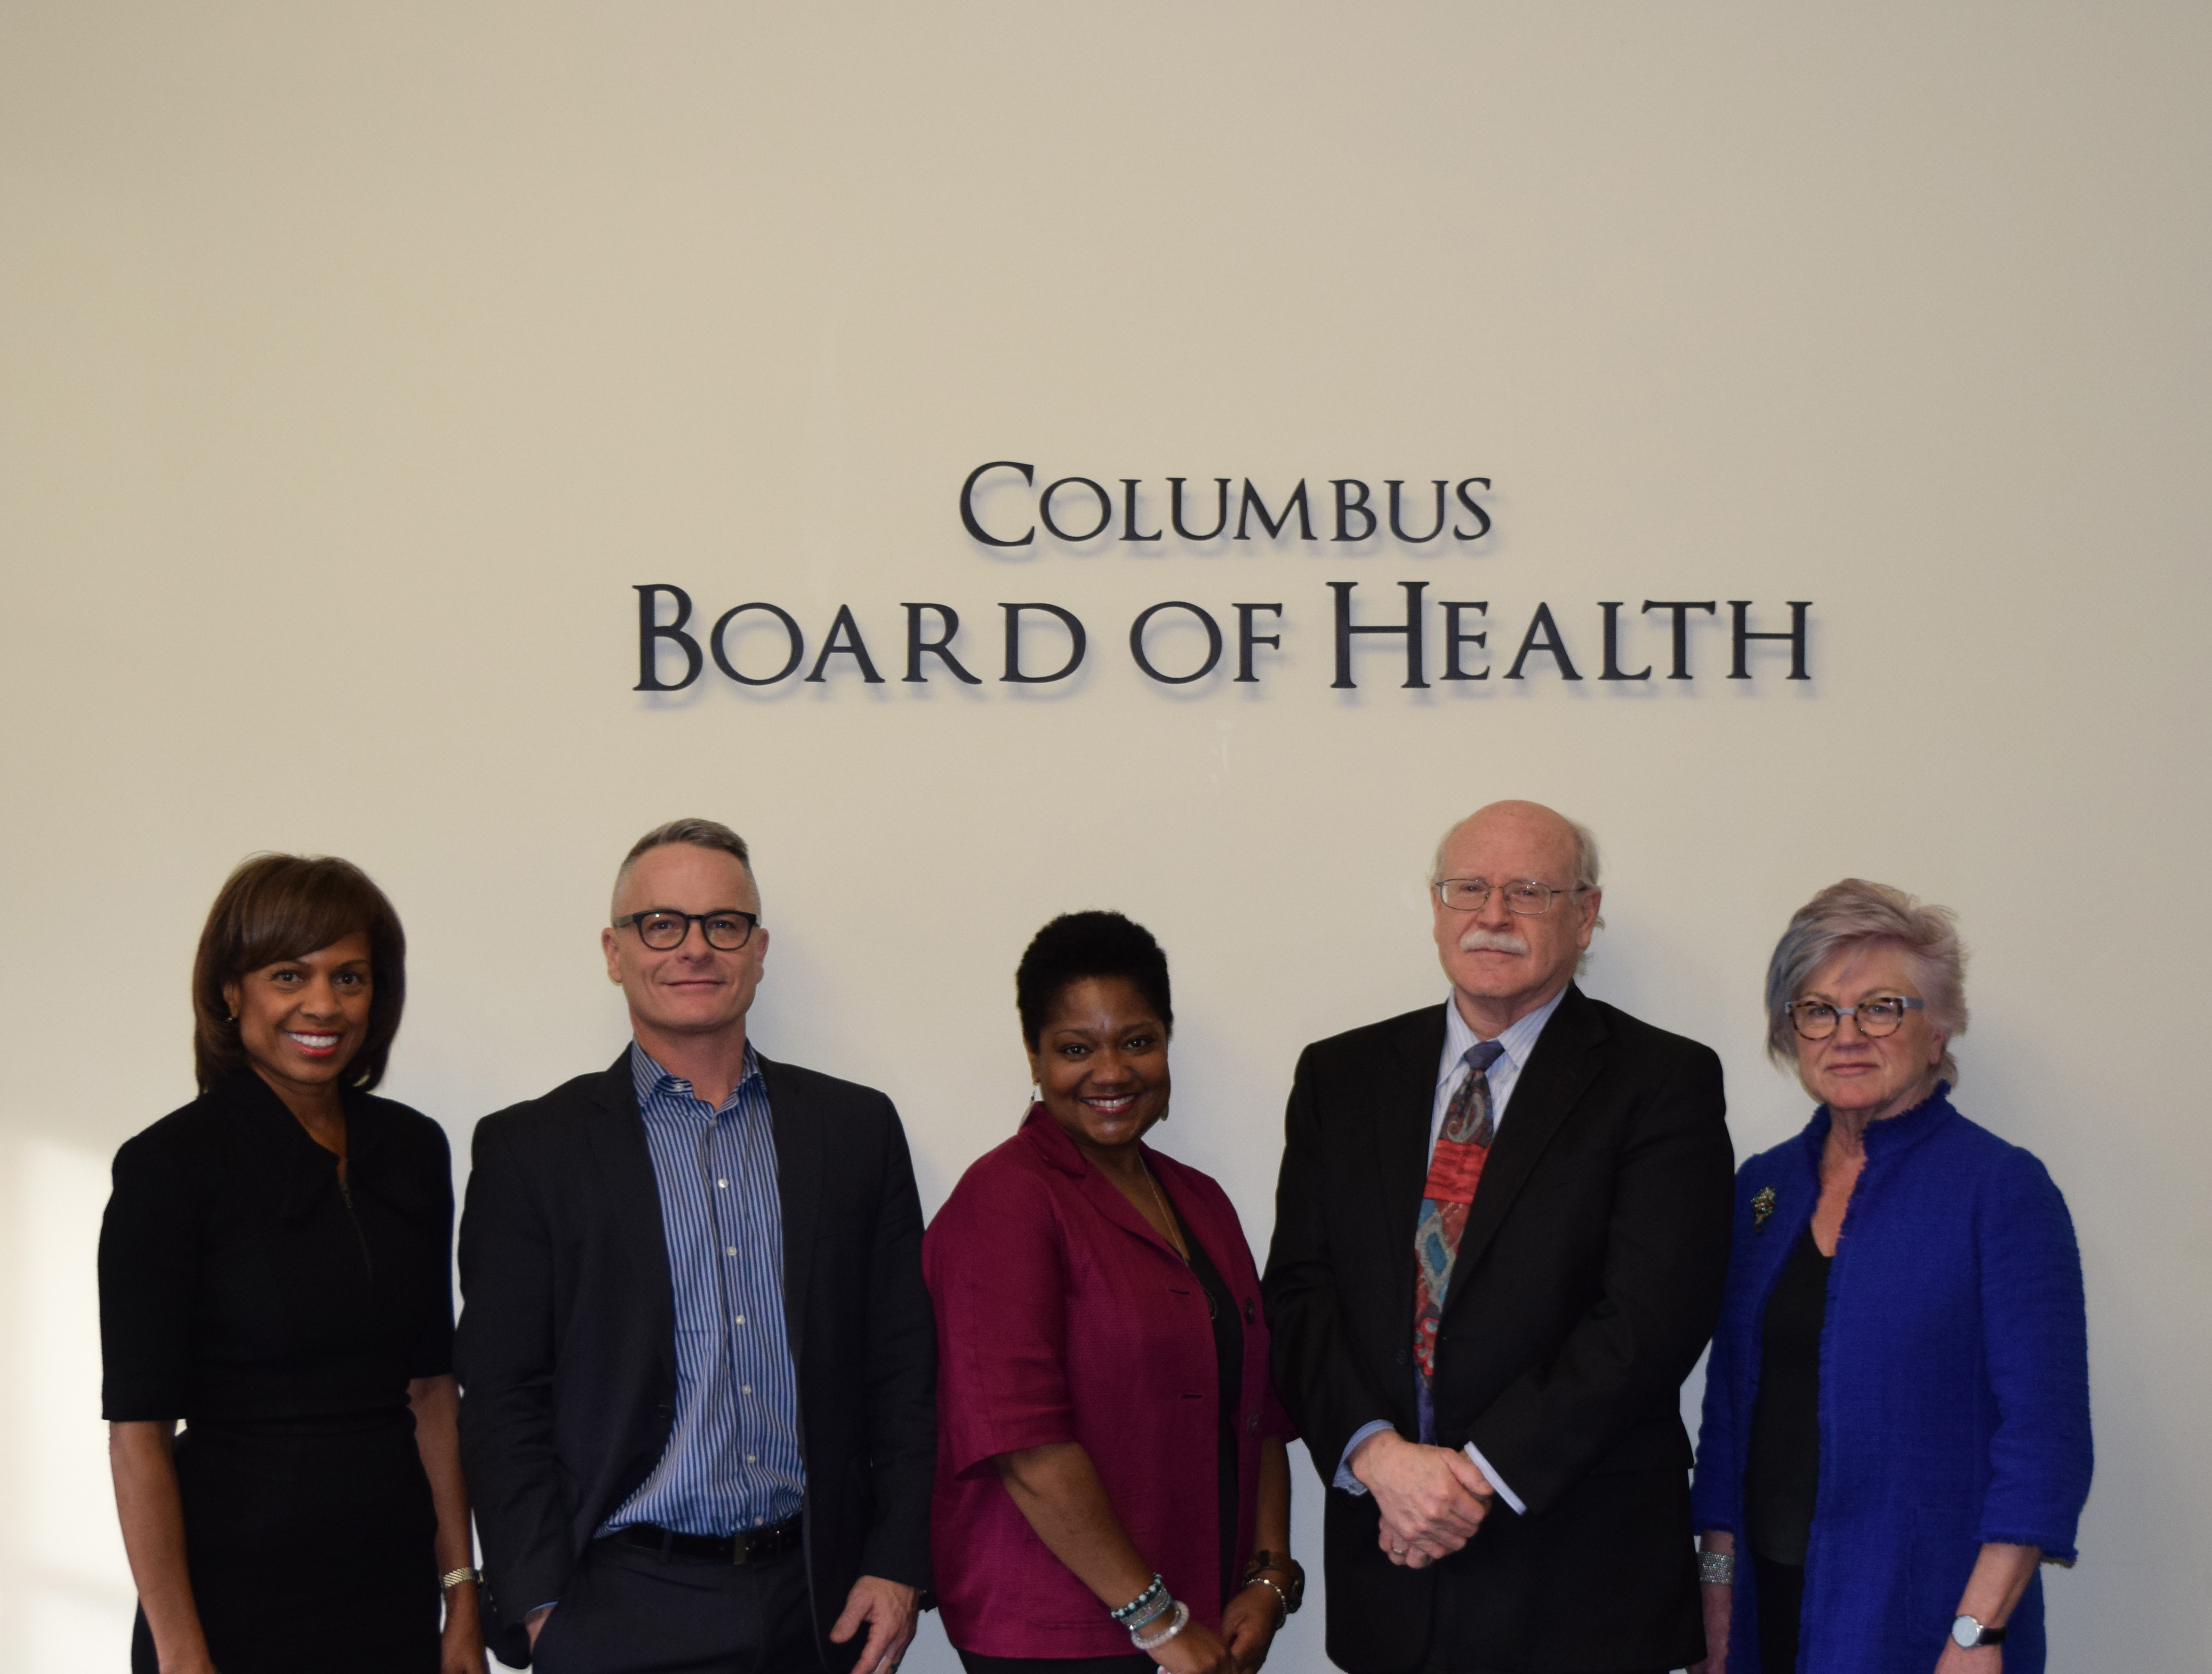 Columbus Board of Health